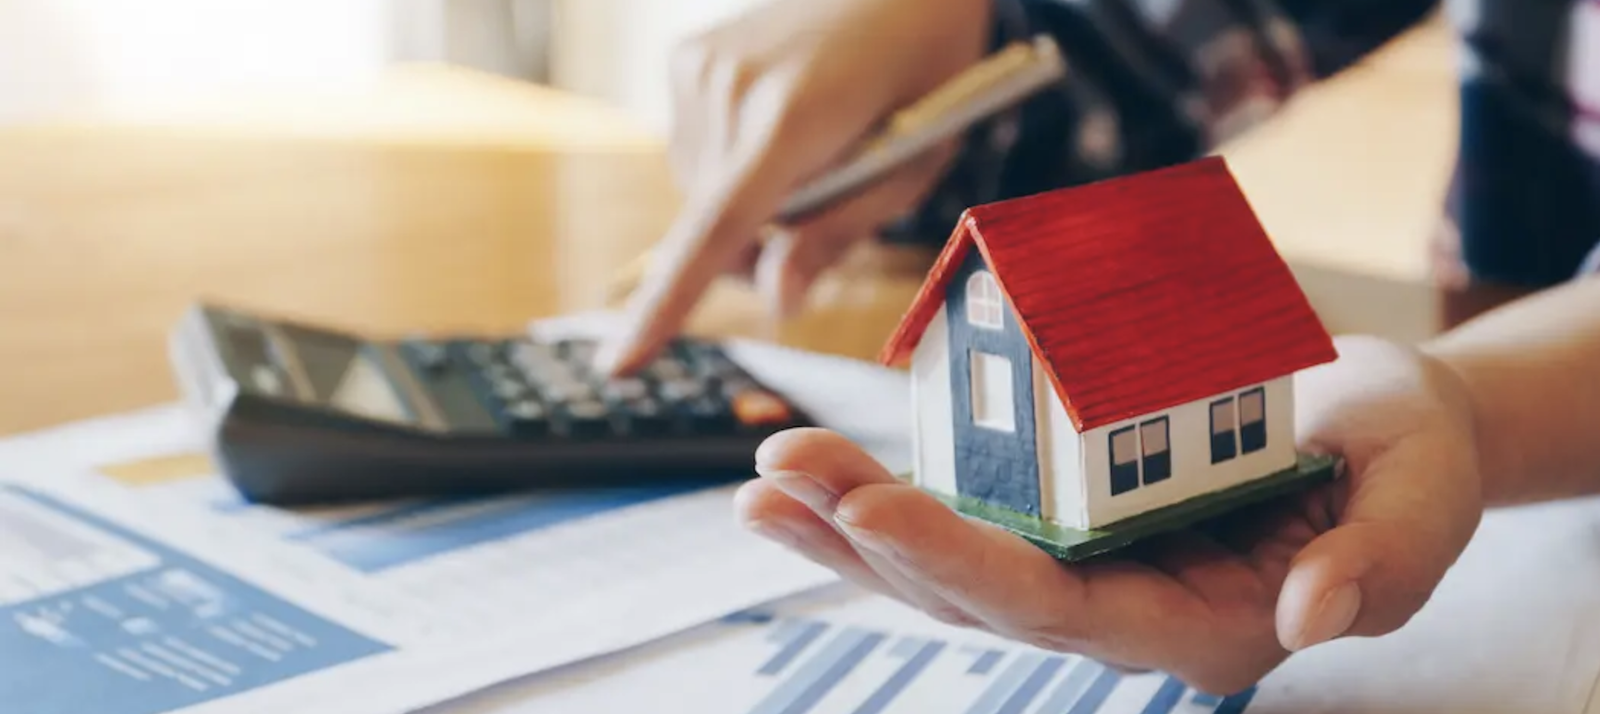 Man holding home figurine in one hand while using calculator to calculate home mortgage with the other hand